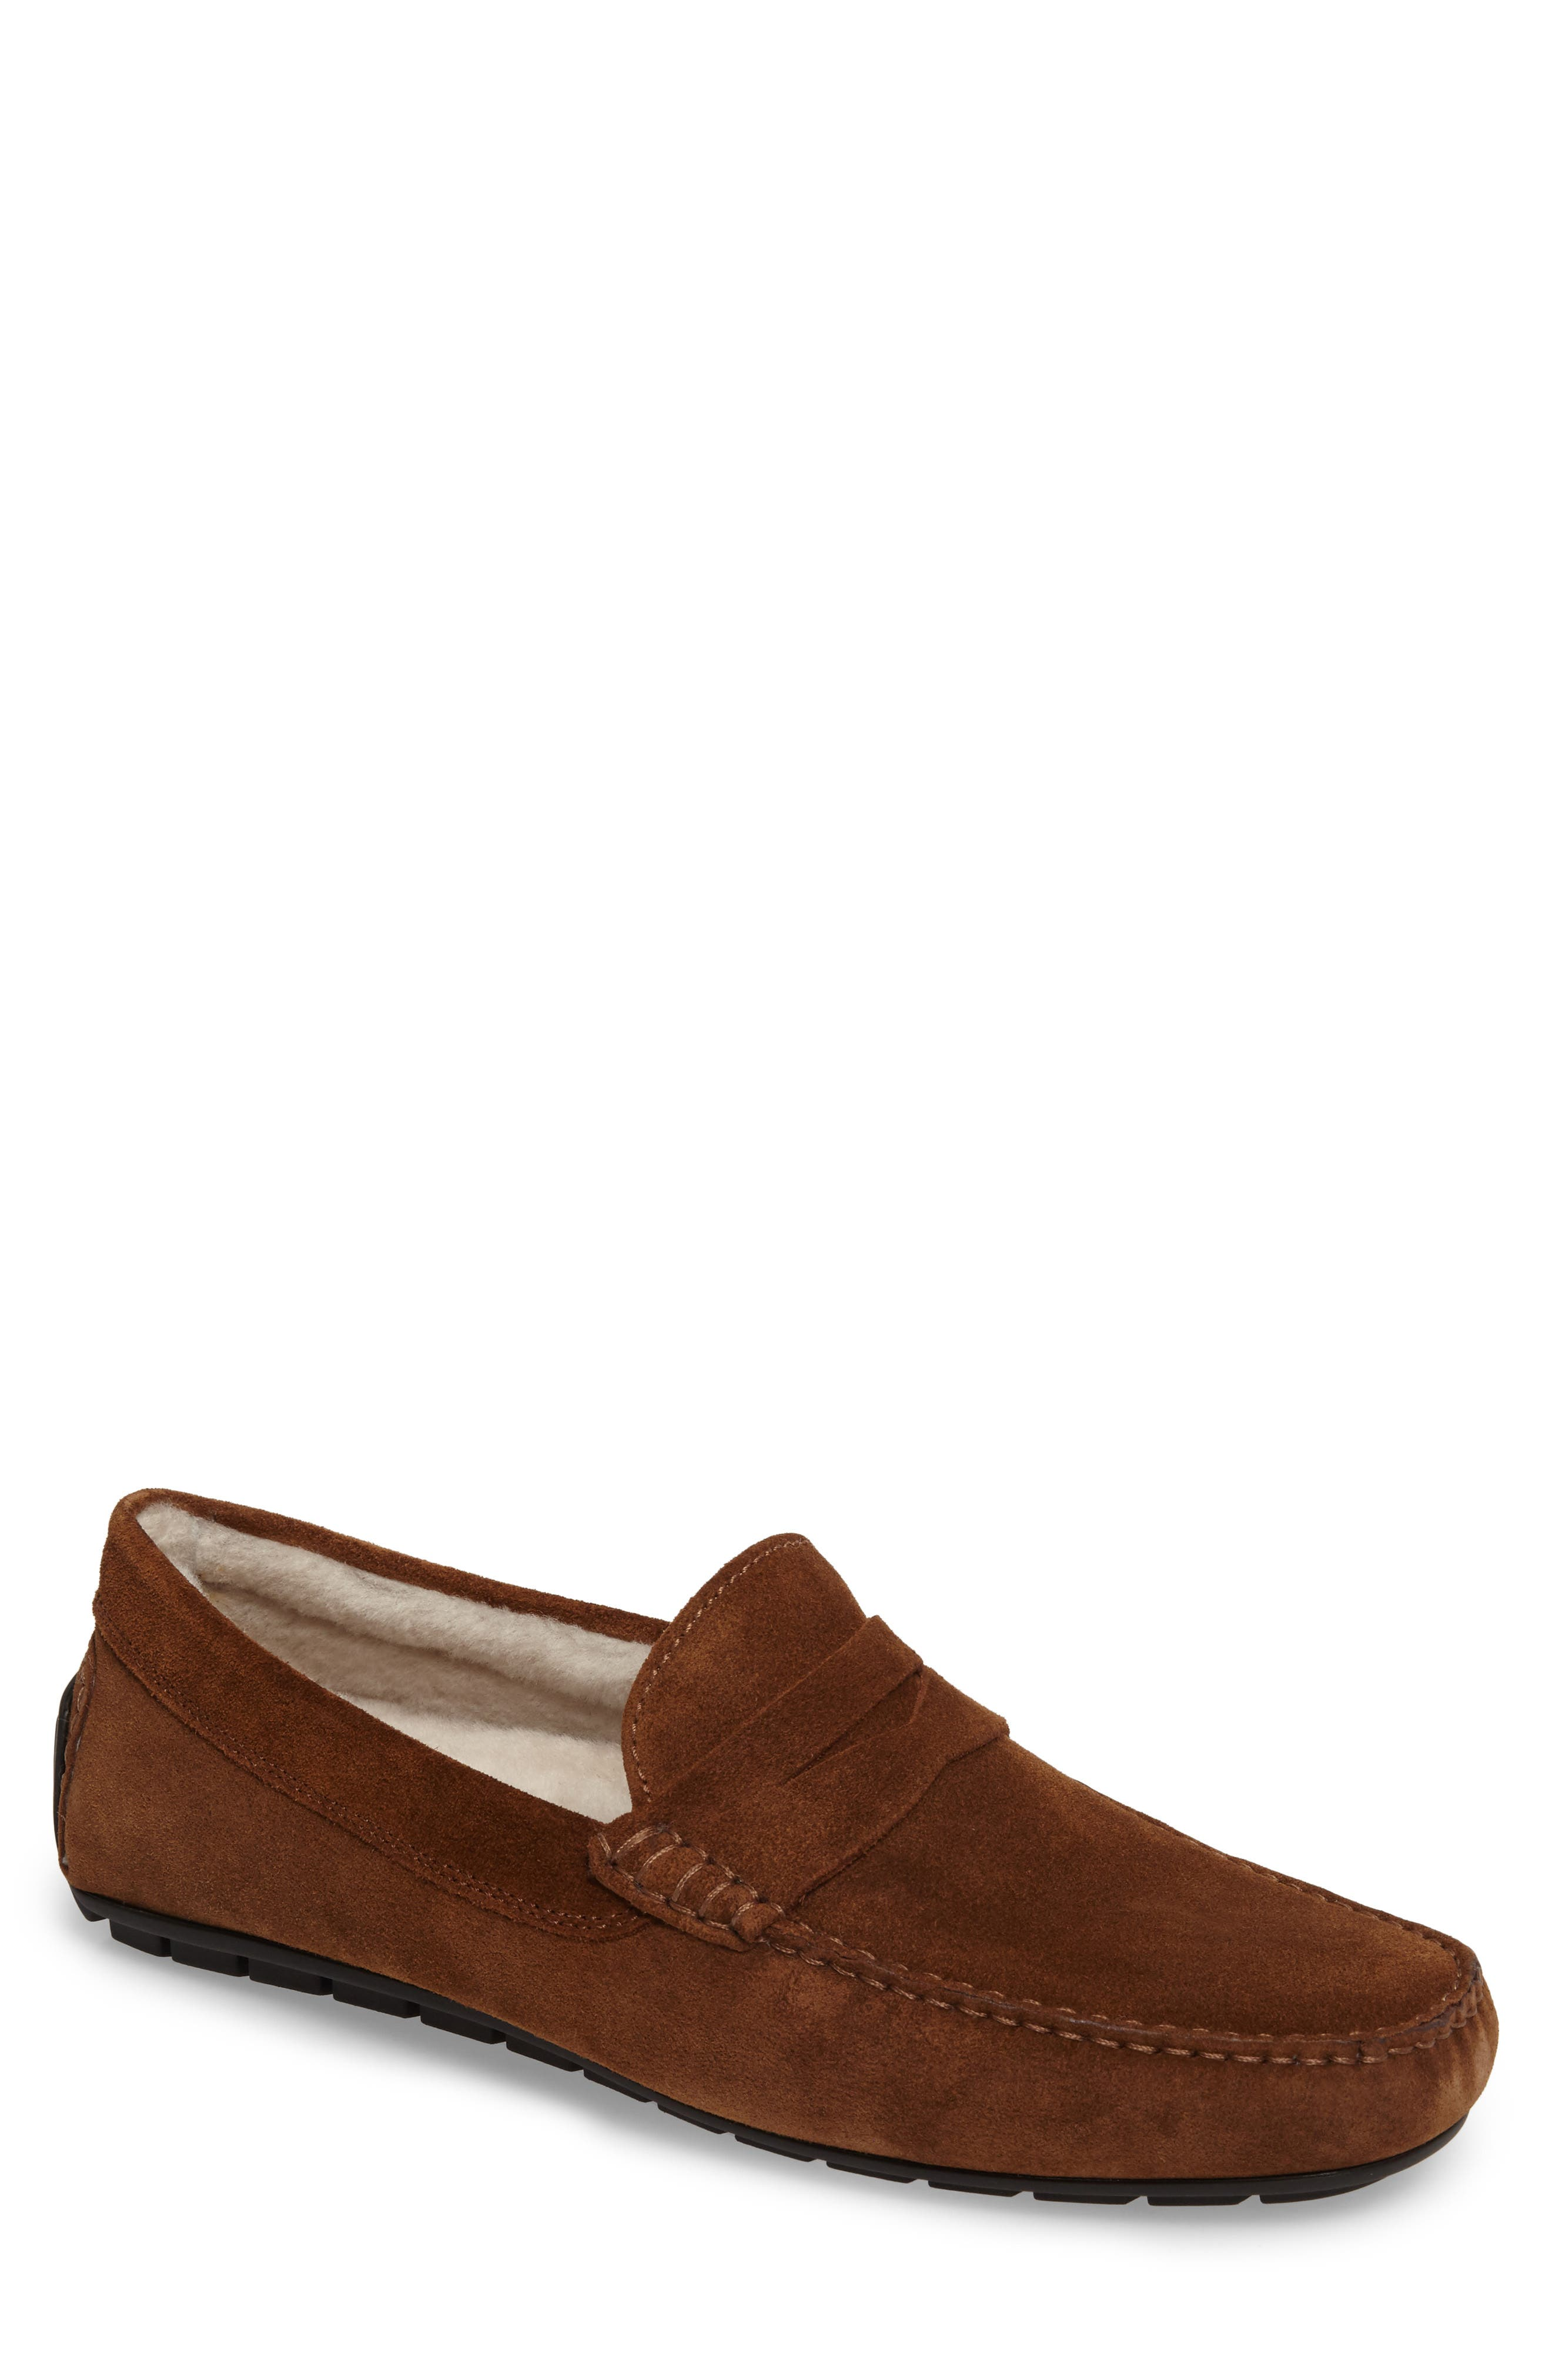 2f980700293 Men s To Boot New York Loafers   Slip-Ons